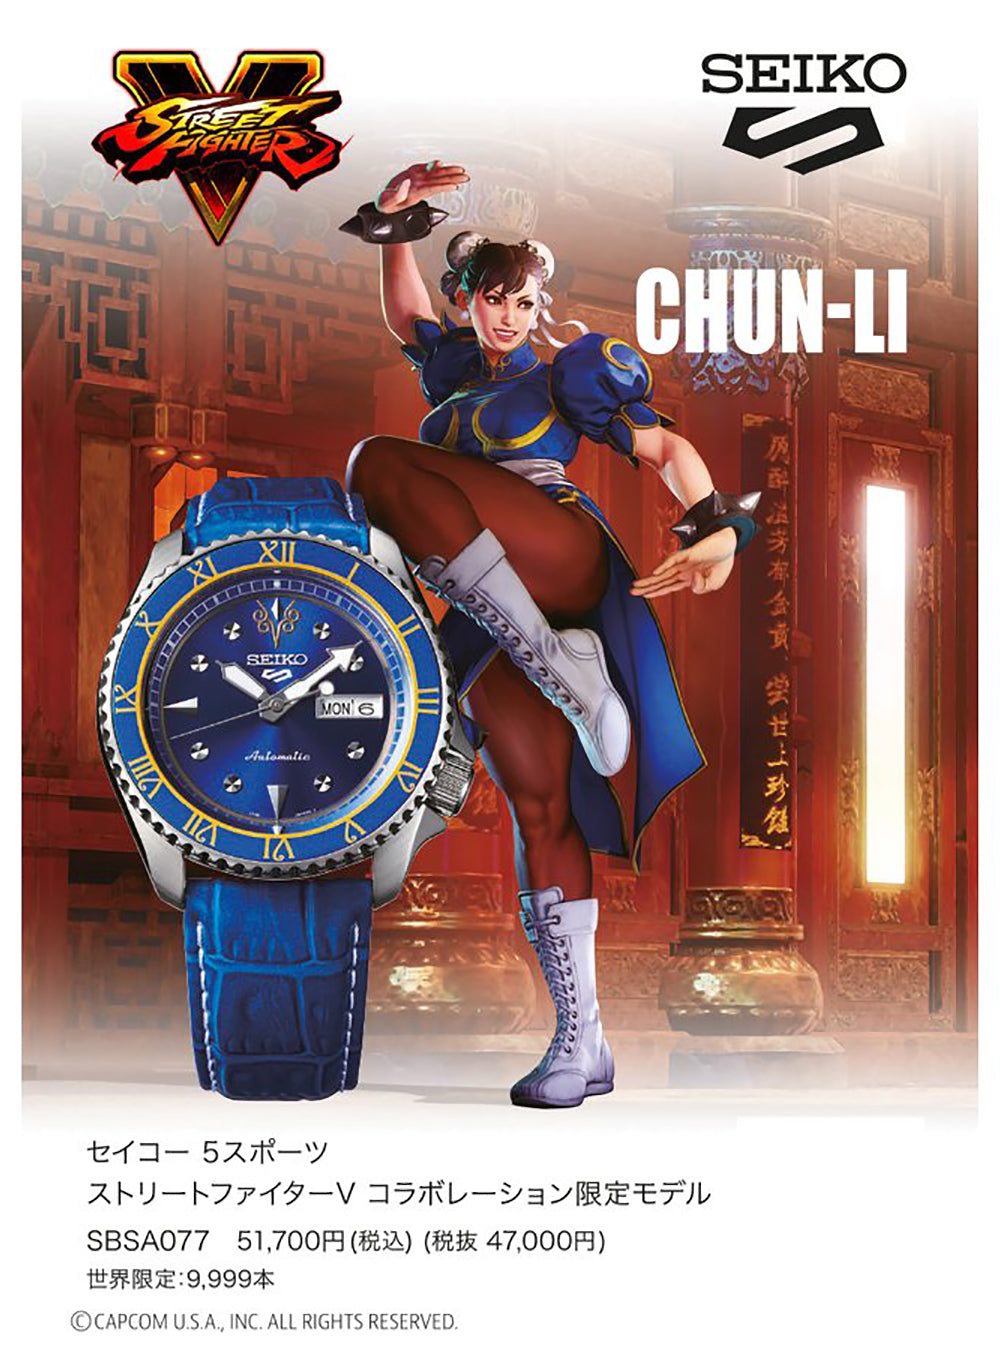 SEIKO 5 SPORTS STREET FIGHTER V LIMITED EDITION CHUN-LI MODEL SASB077 MADE IN JAPAN JDM